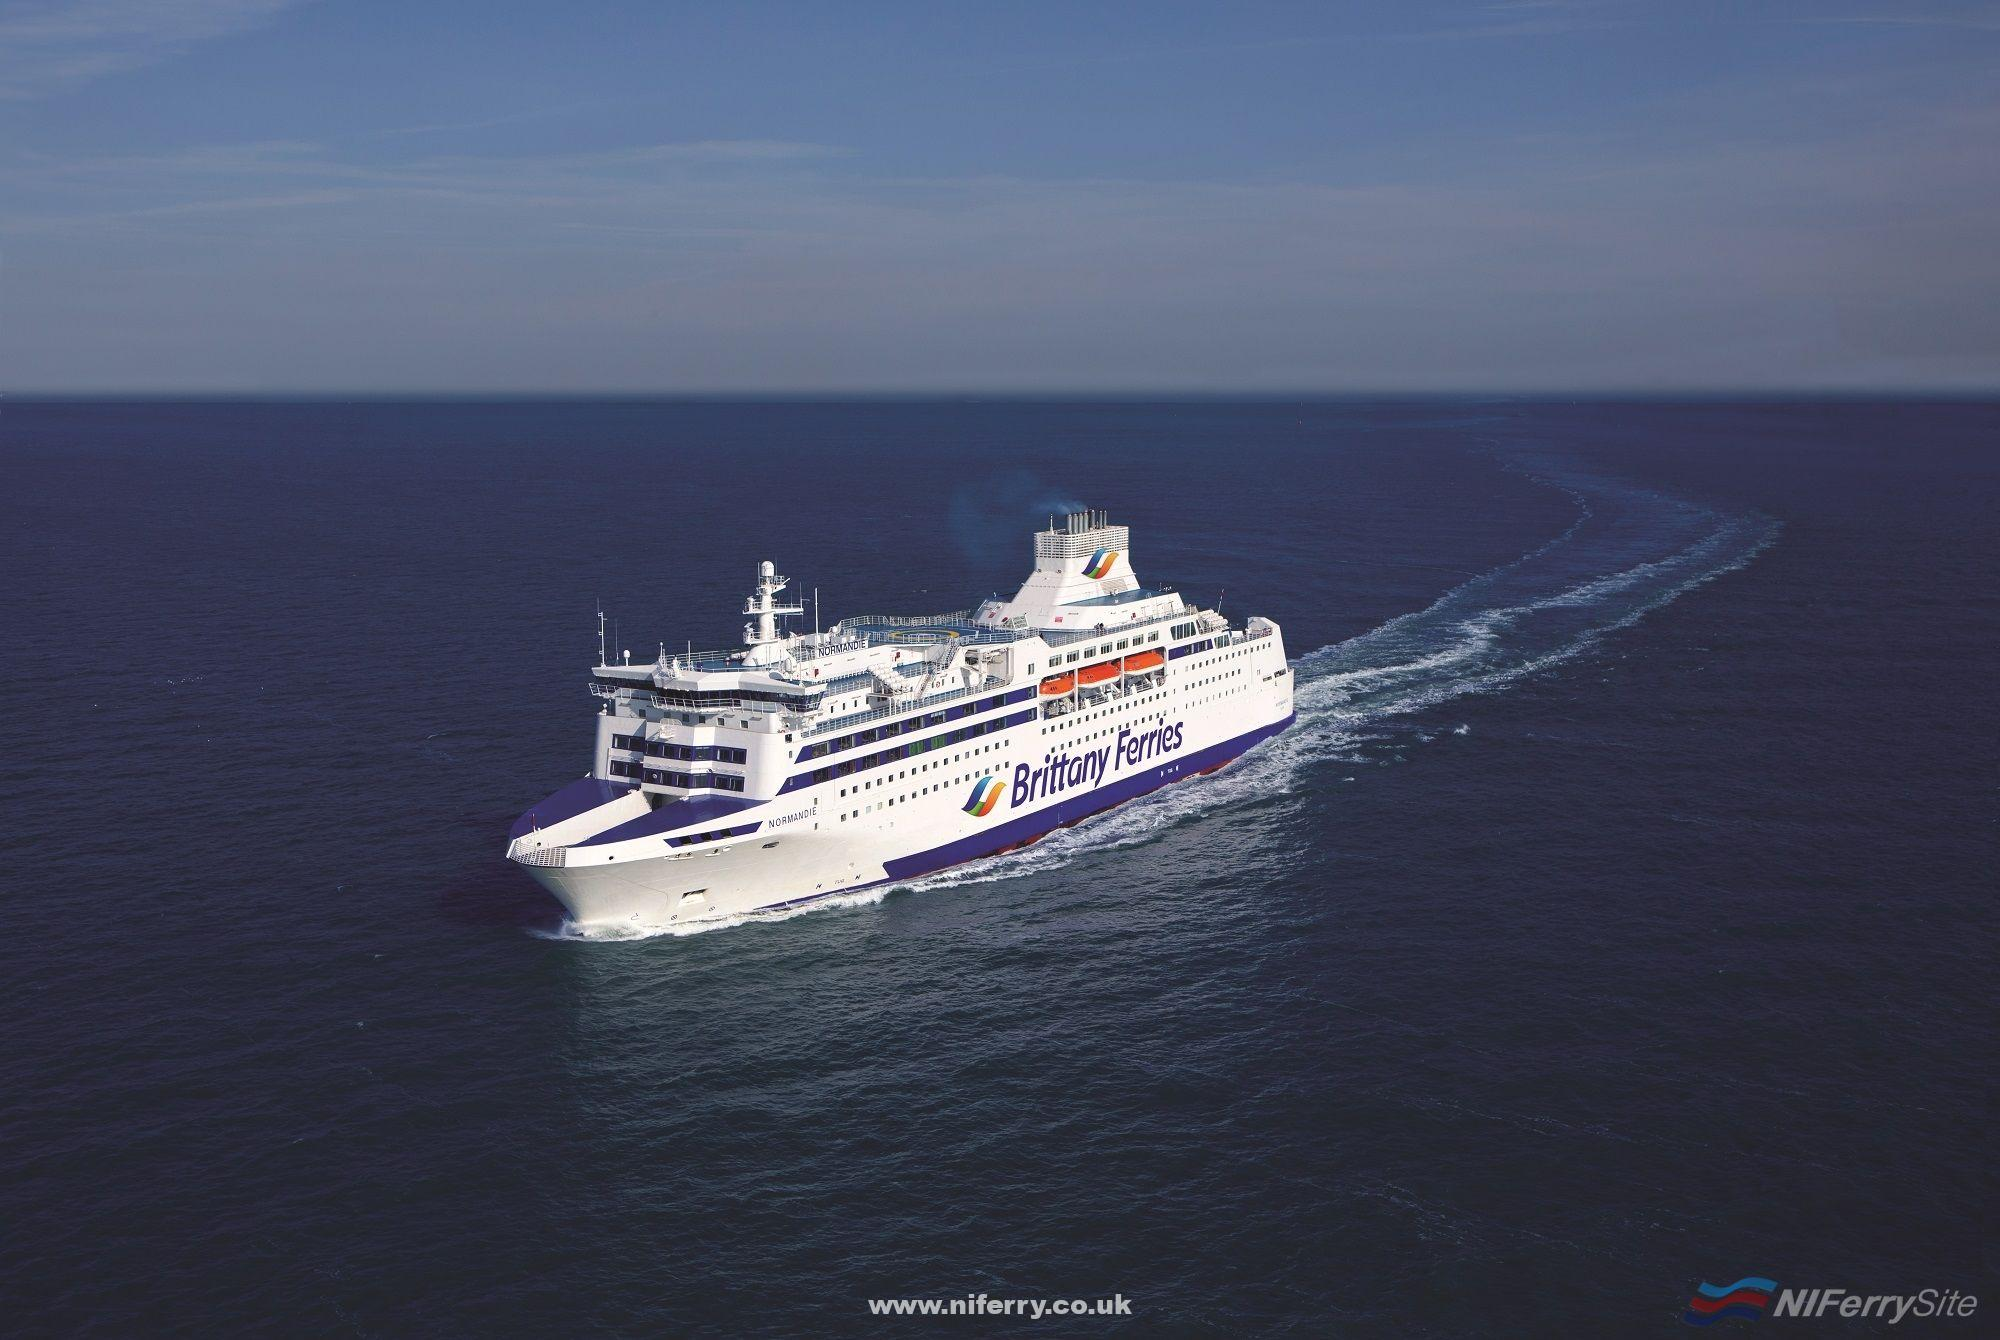 Brittany Ferries NORMANDIE wearing the new livery for the 2019 season. Brittany Ferries.